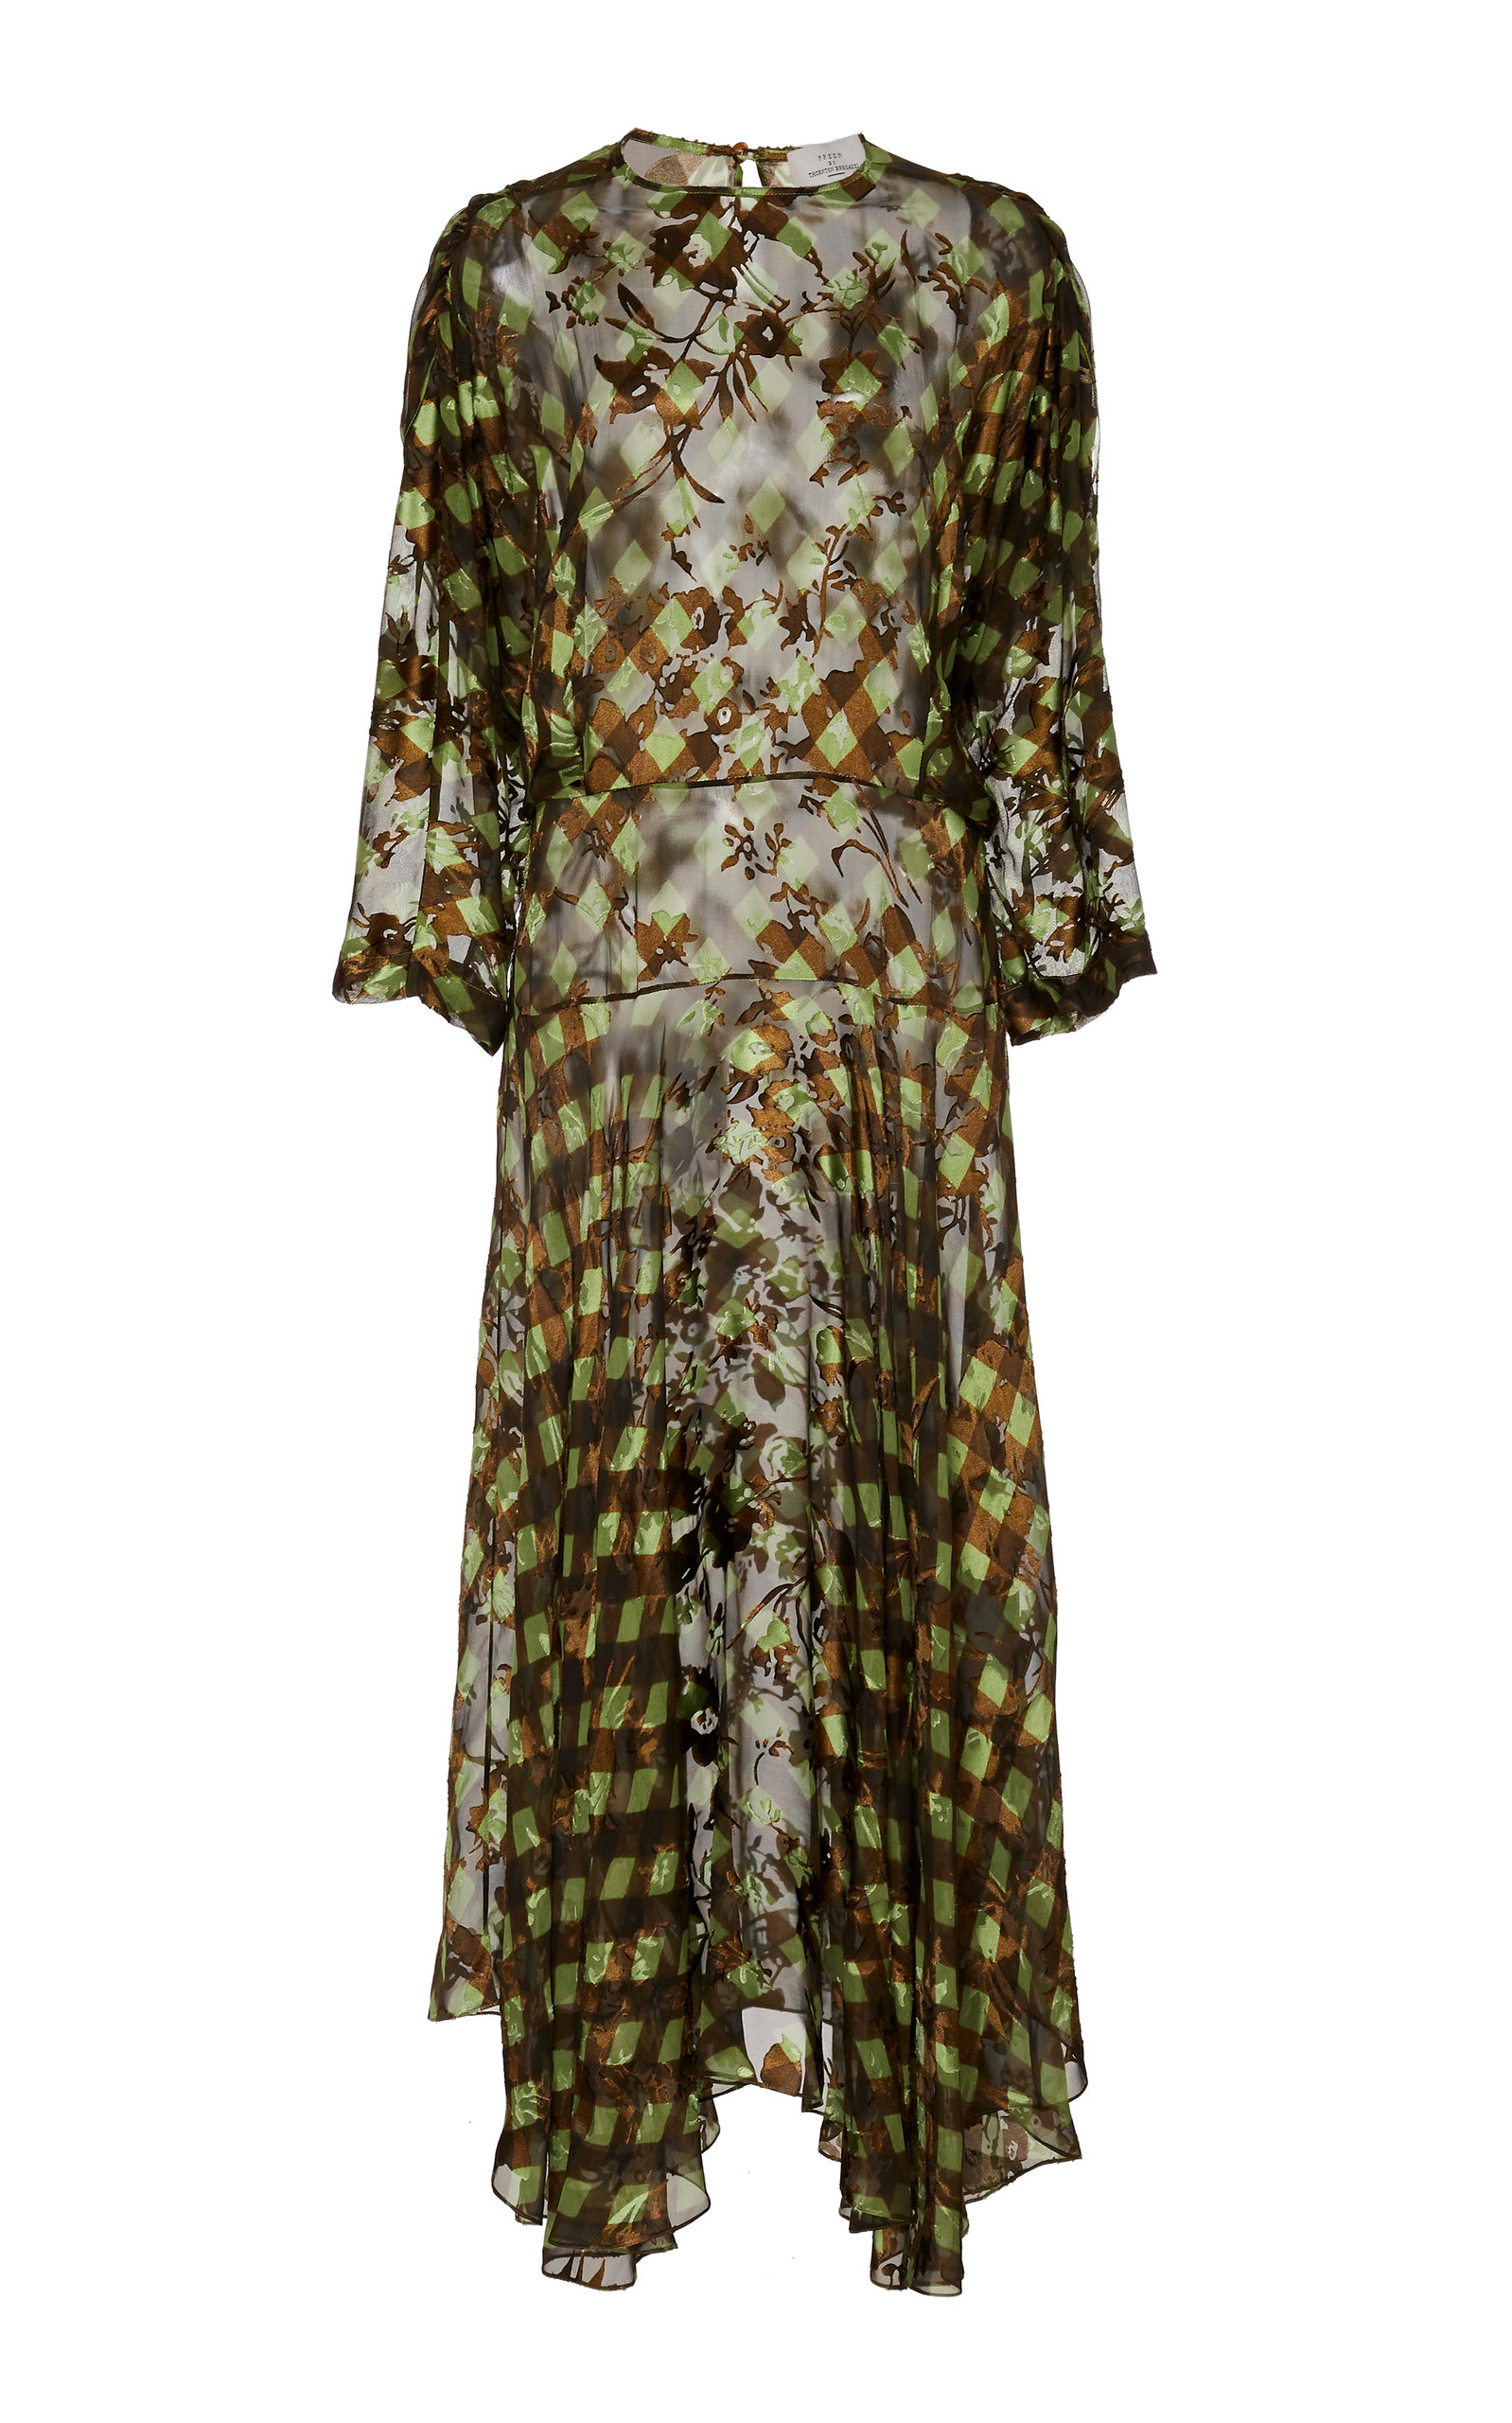 Buy Preen by Thornton Bregazzi Brooke Asymmetric Printed Silk-Blend Midi D online, shop Preen by Thornton Bregazzi at the best price